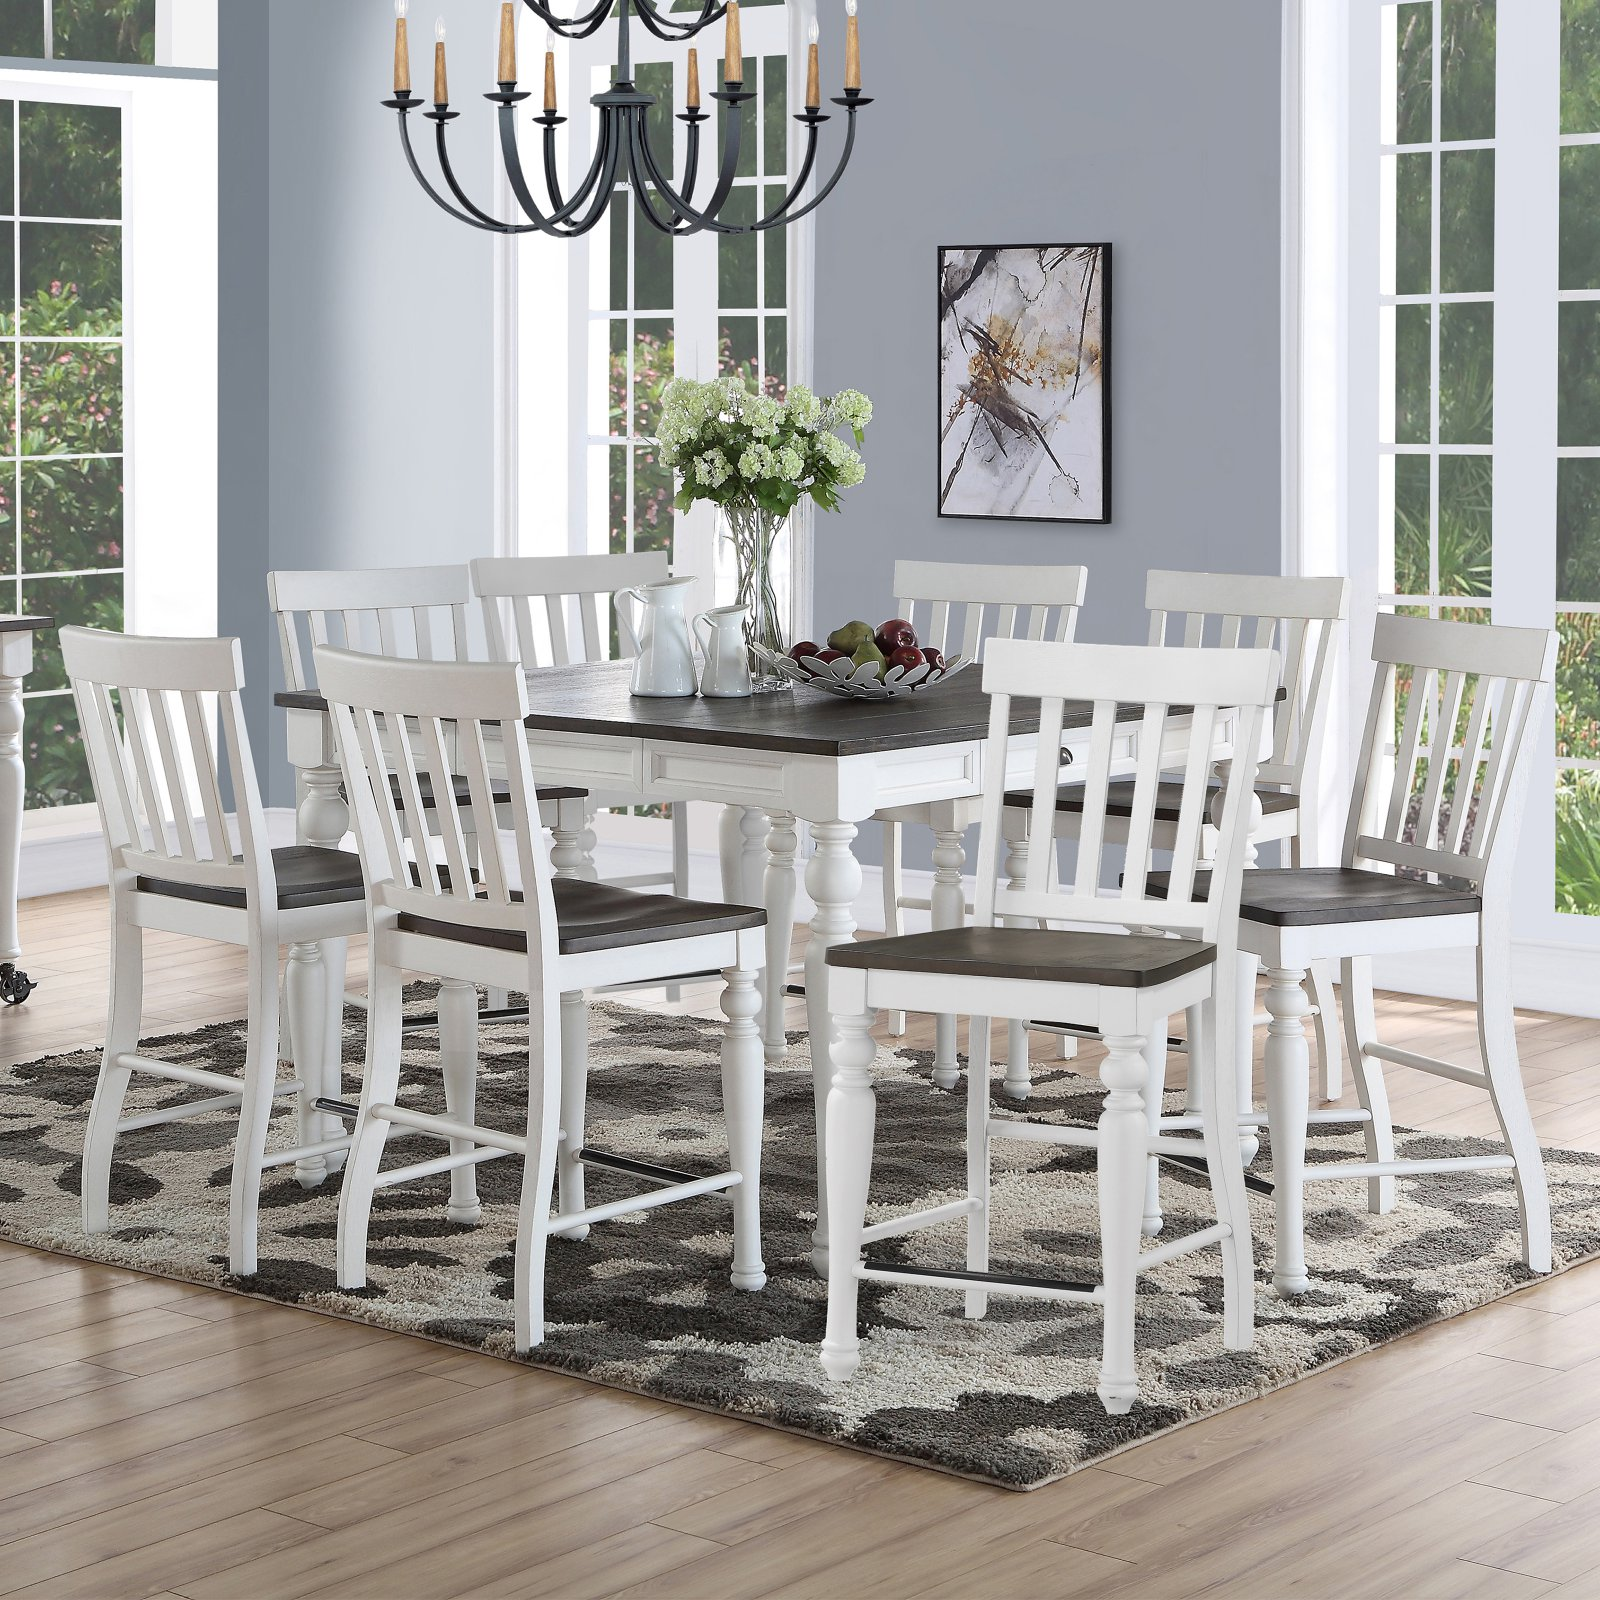 Steve Silver Co. Joanna 9 Piece Transitional Counter Height Dining Set